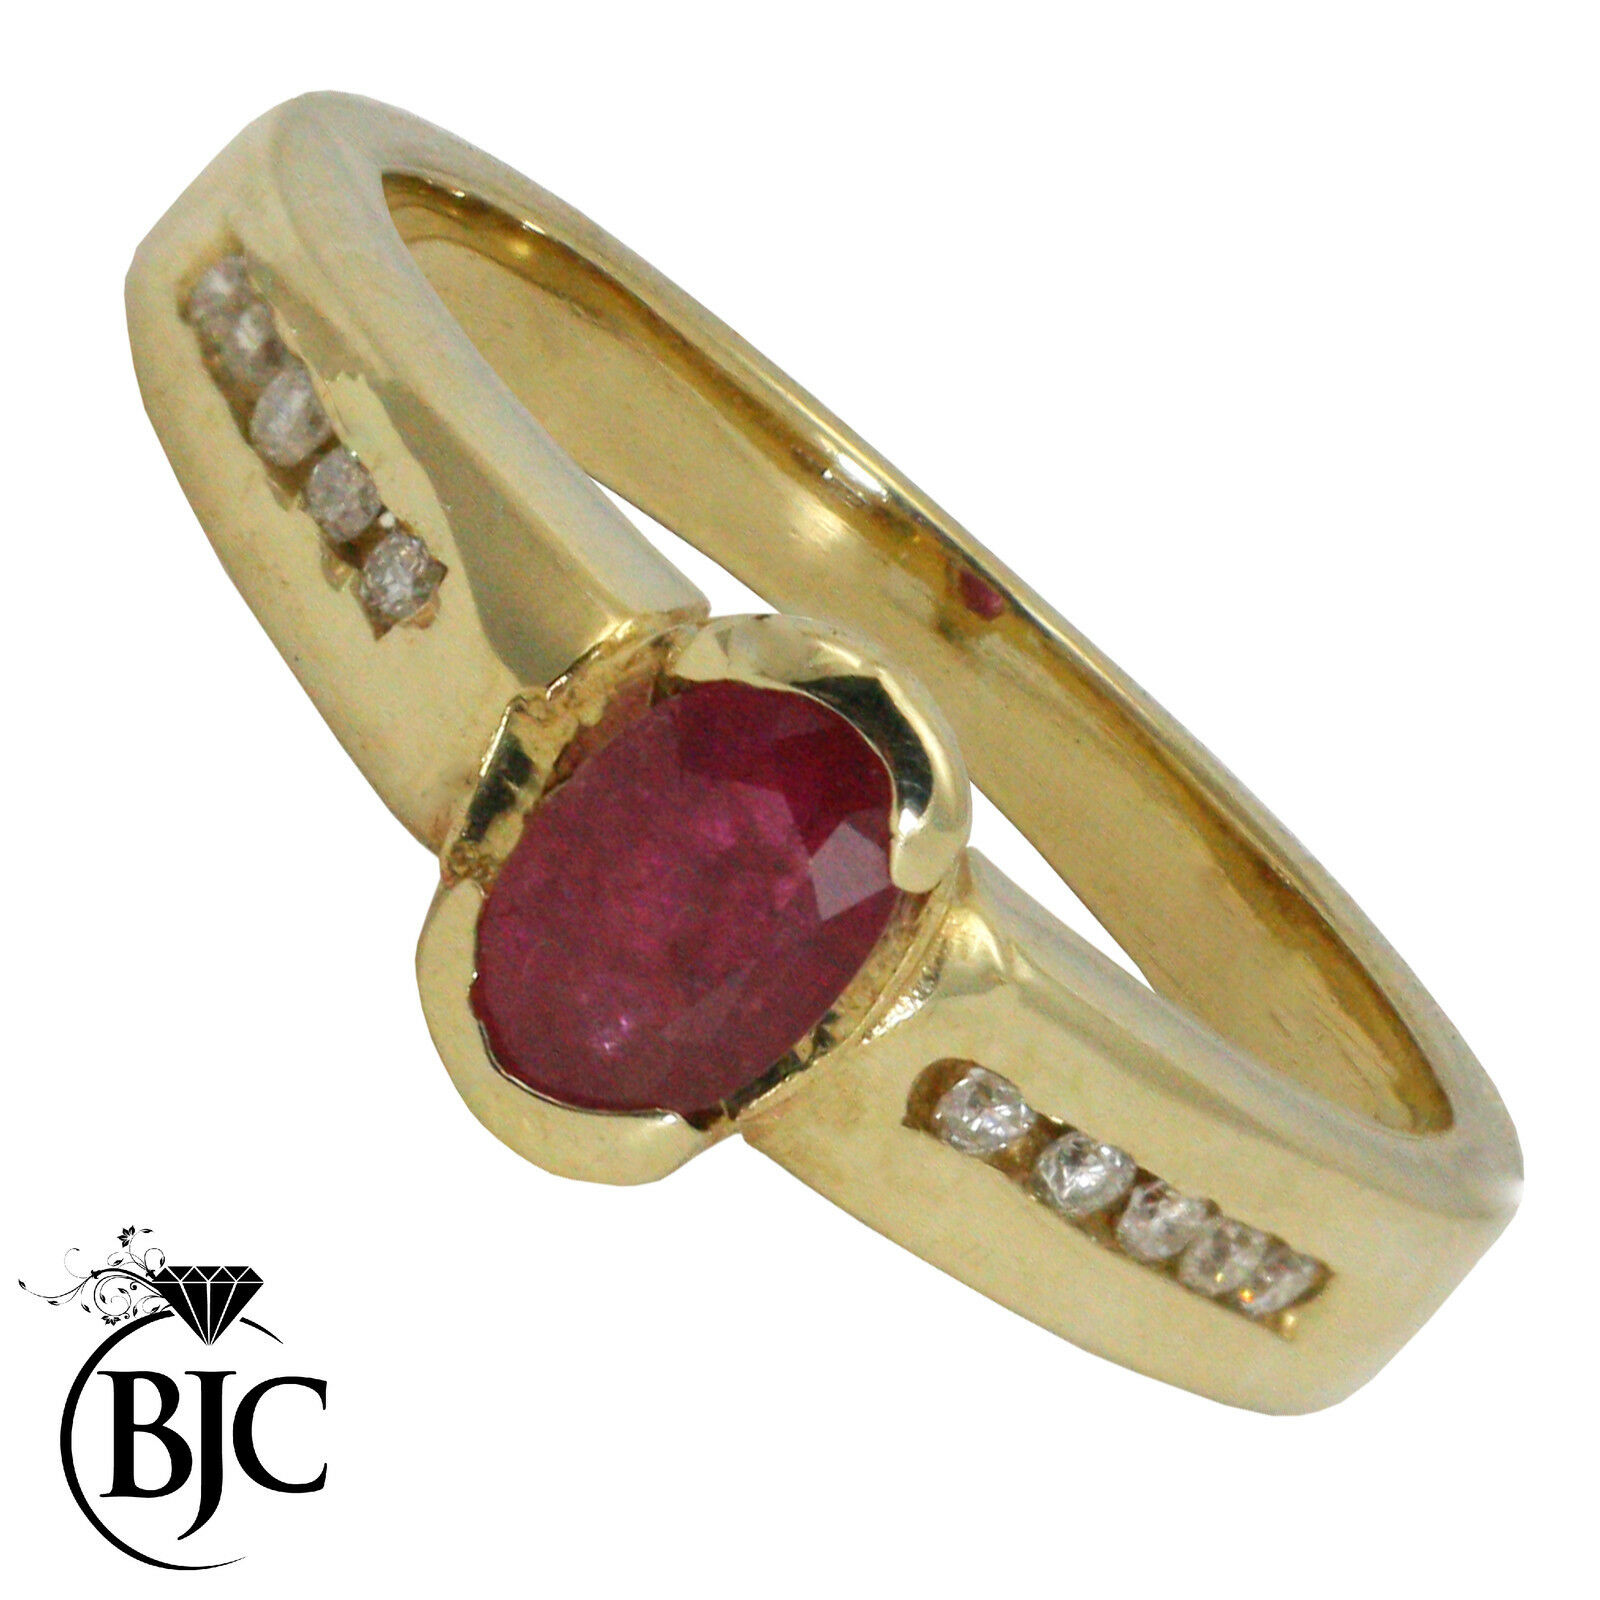 Bjc 9 Ct Rubis or yellow & Diamant Solitaire size N Fiançailles